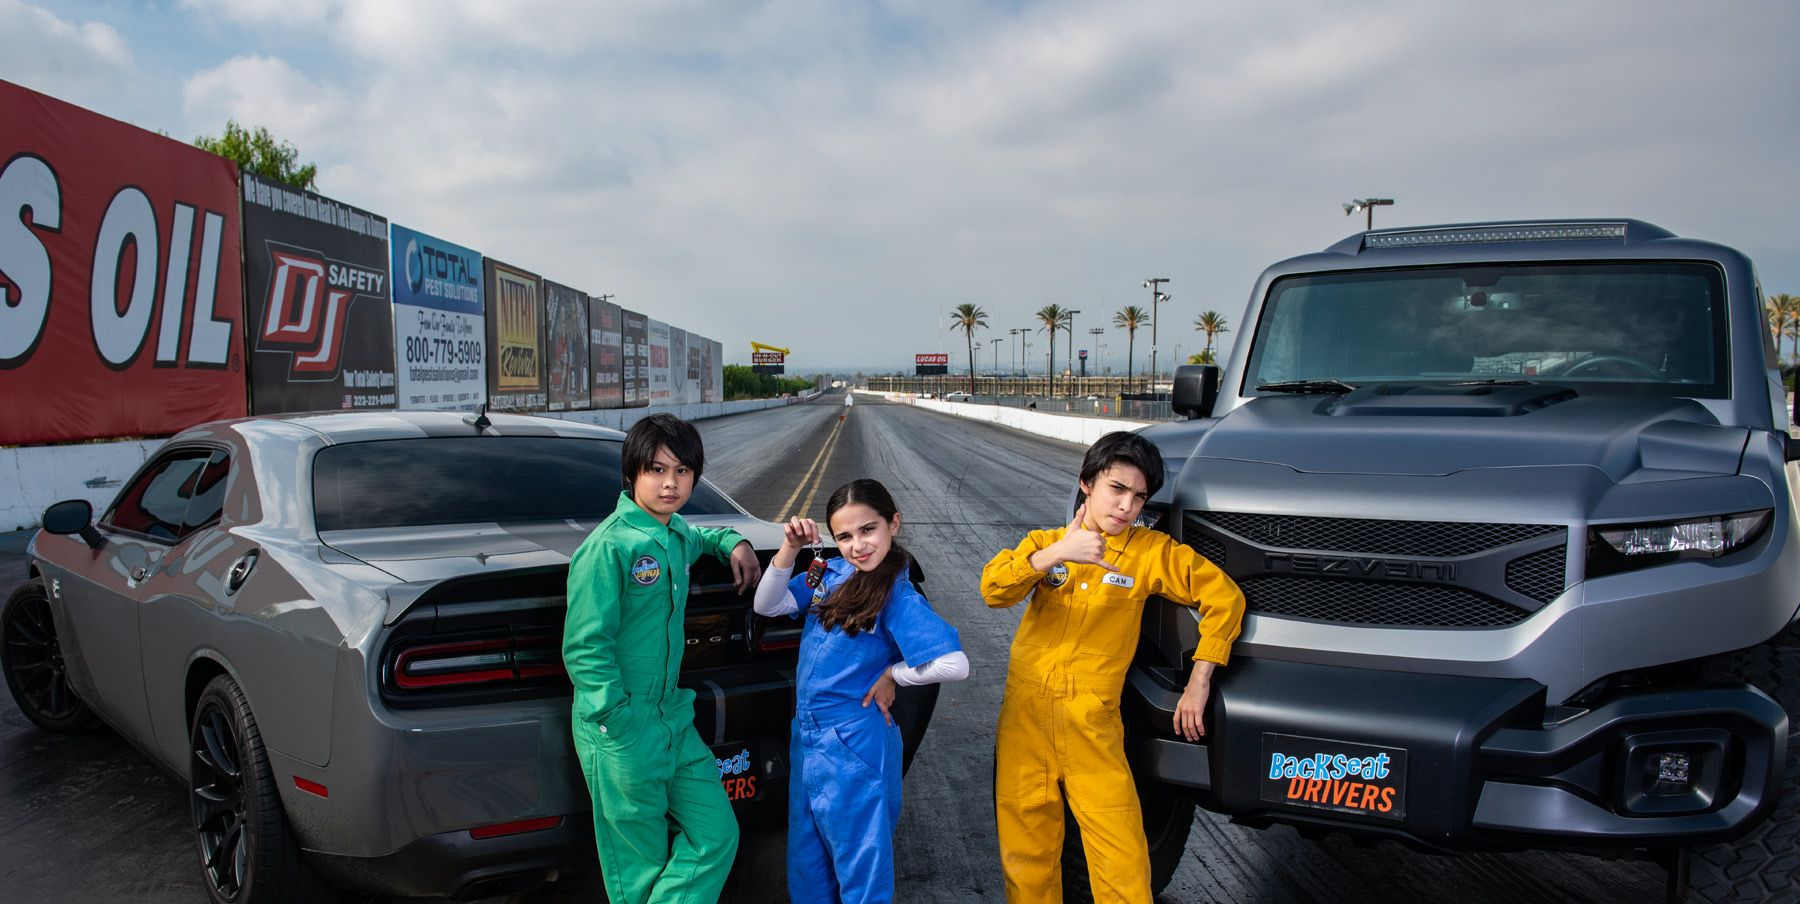 Backseat Drivers, a New Car Show Starring Kid Drivers